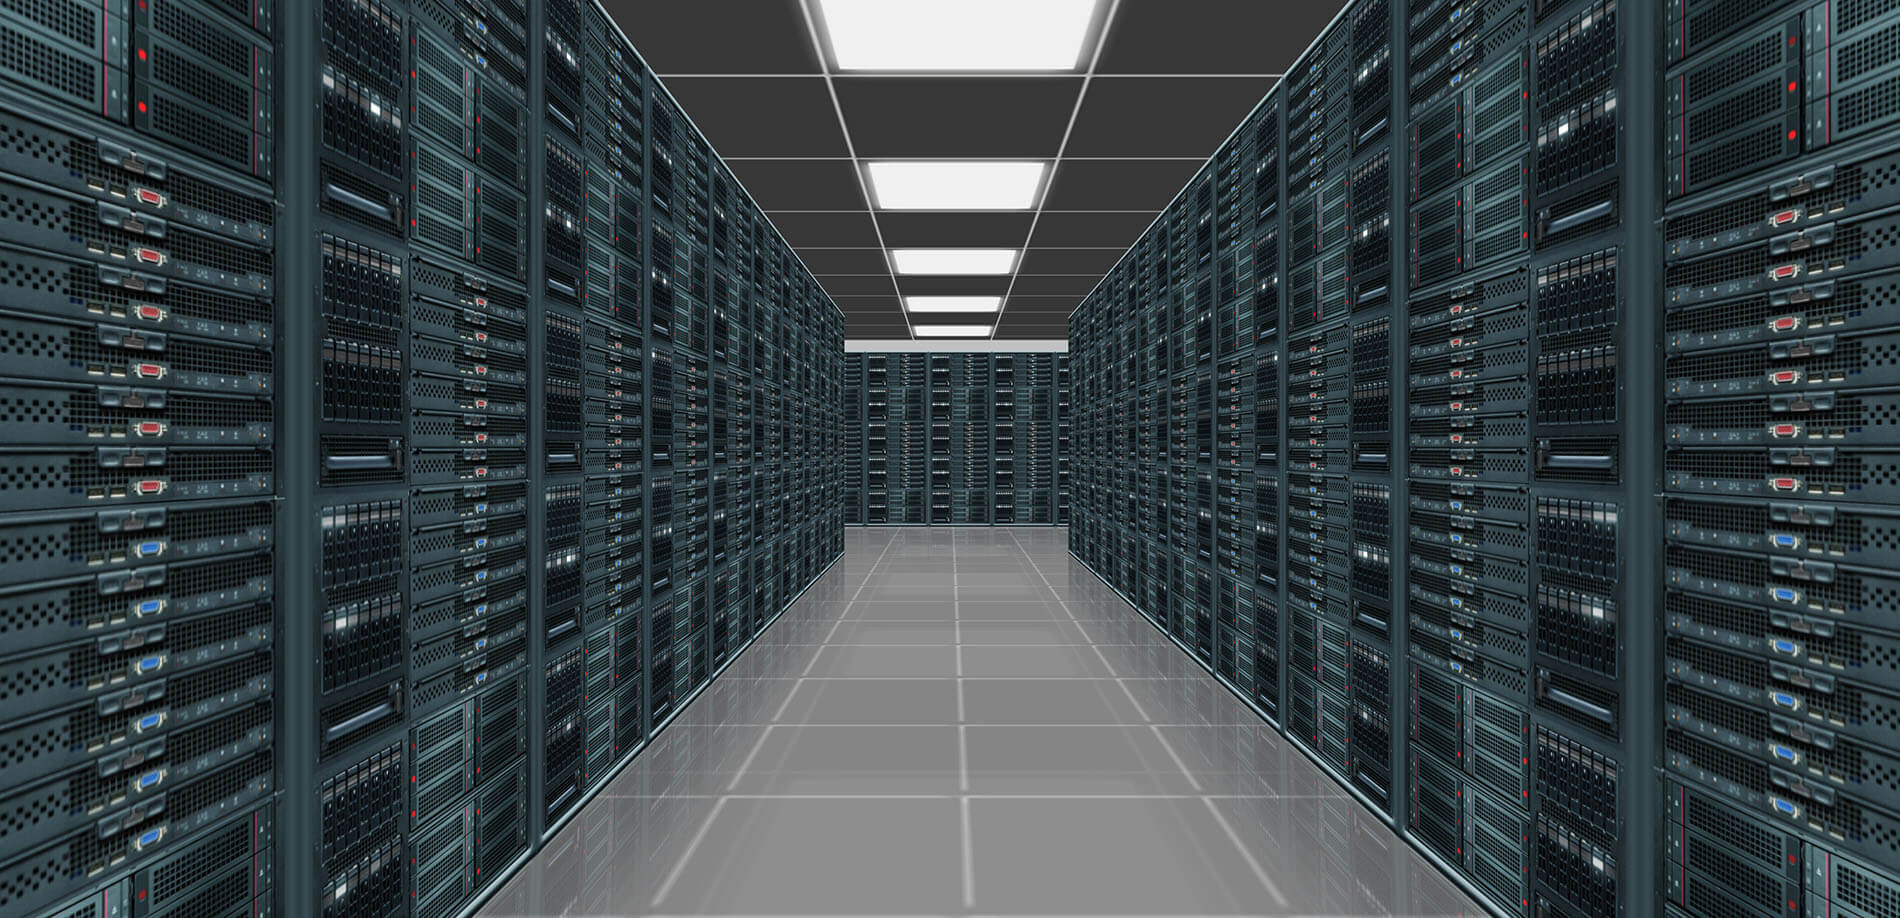 Next-Generation Networking: Disaggregating the Data Center